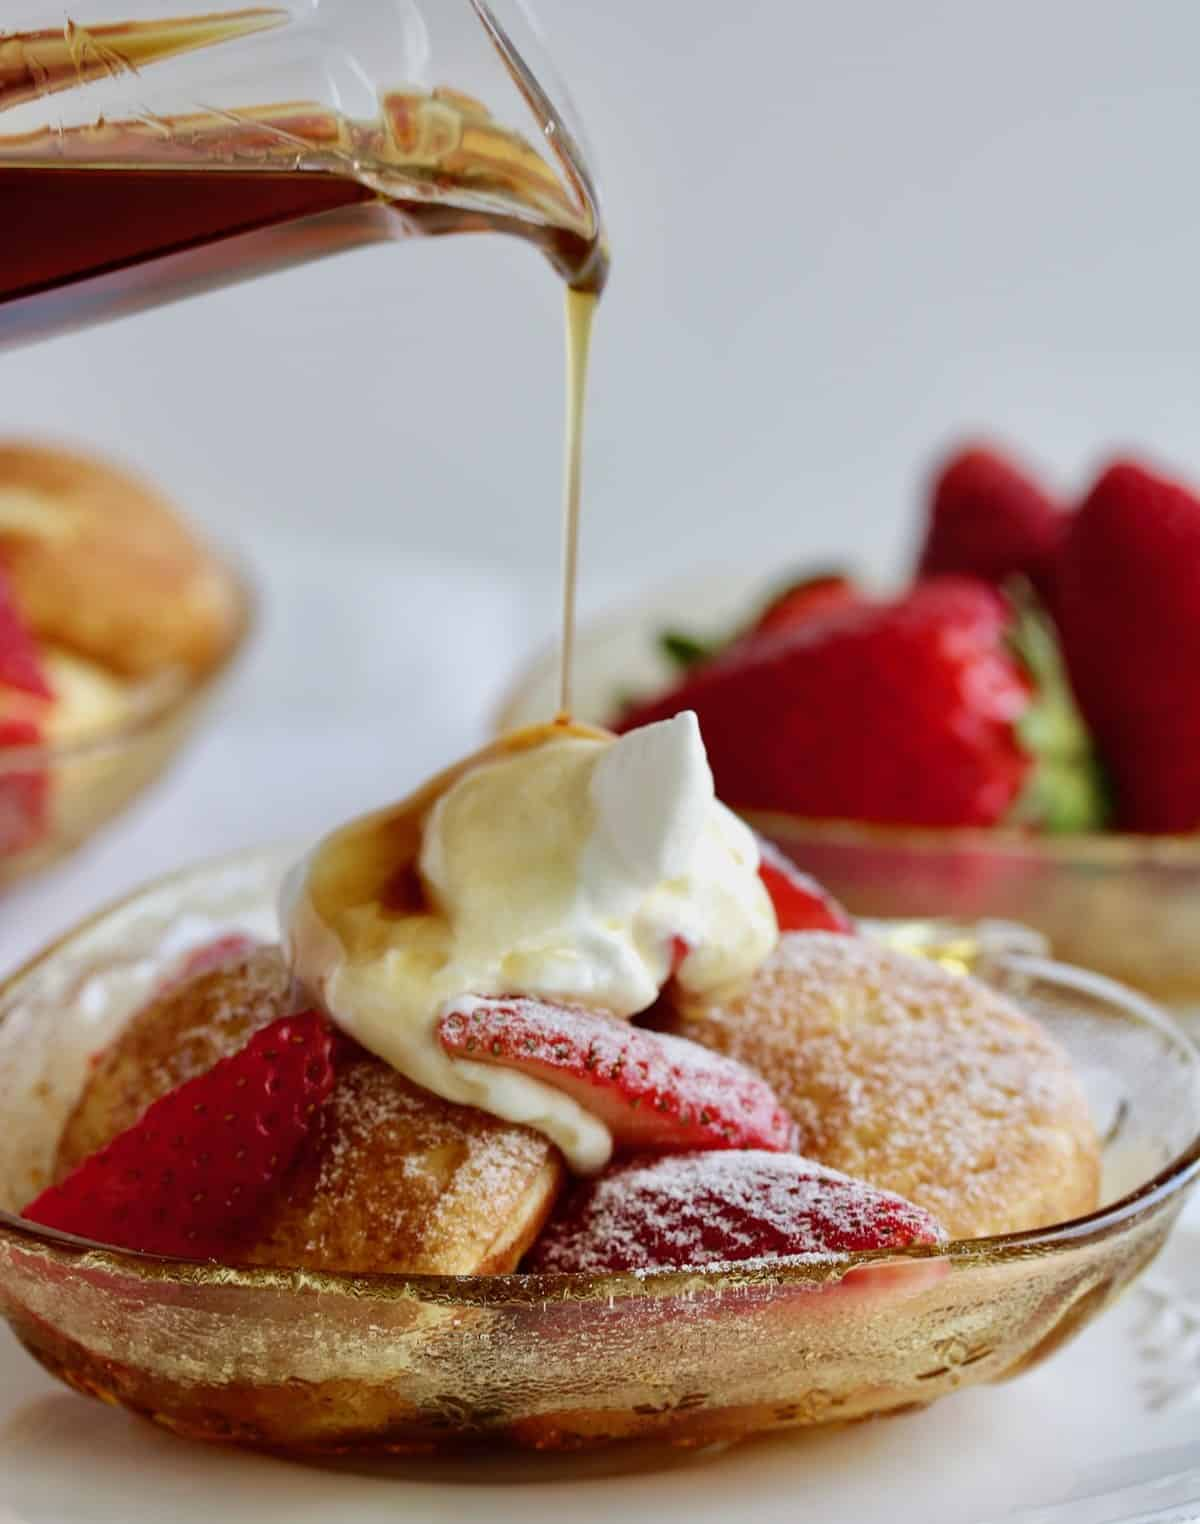 puffed pancakes with strawberries, cream and syrup poured on top